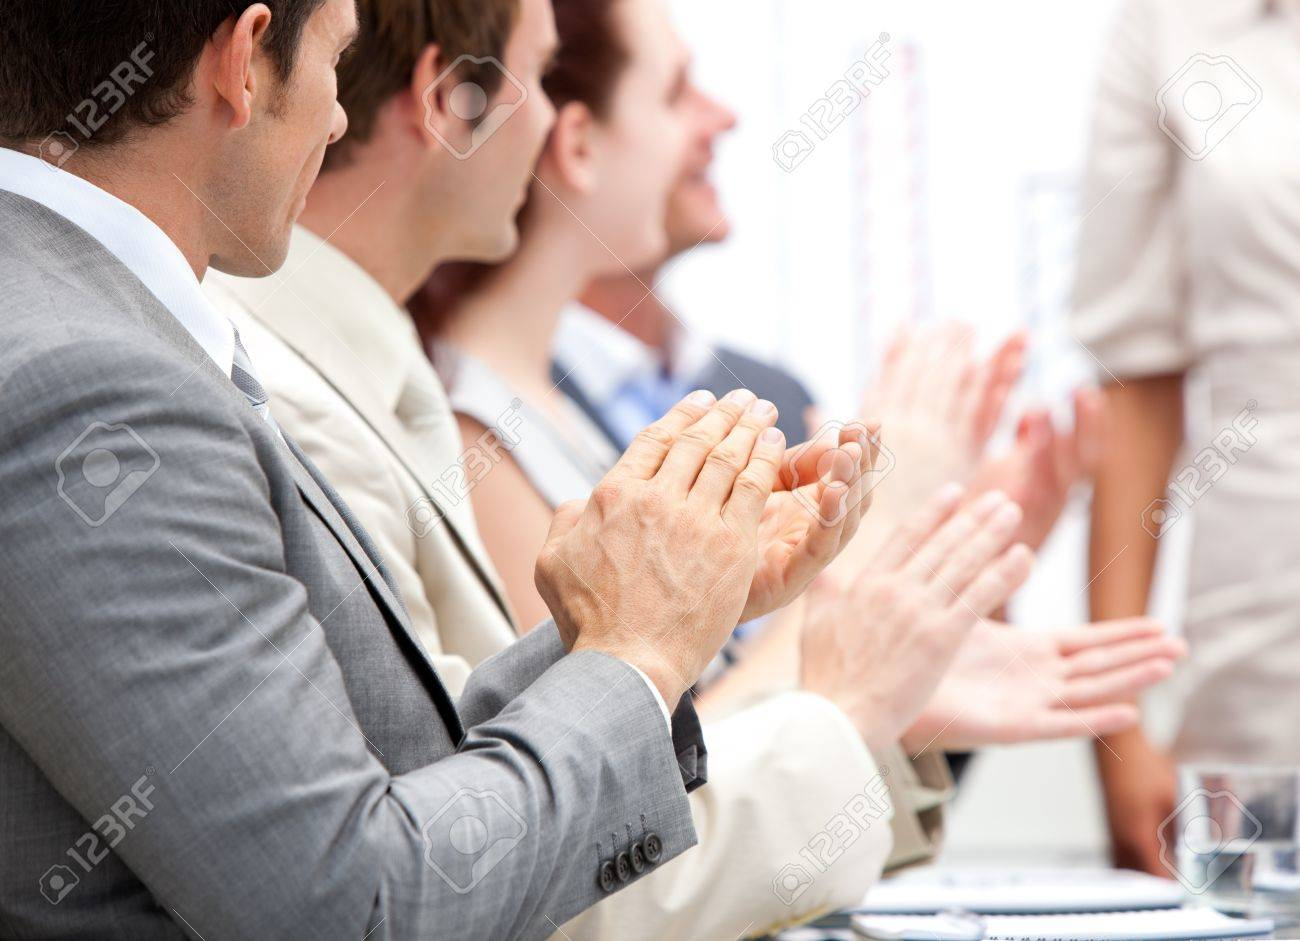 Portrait of a businessteam applauding during a meeting Stock Photo - 10248134